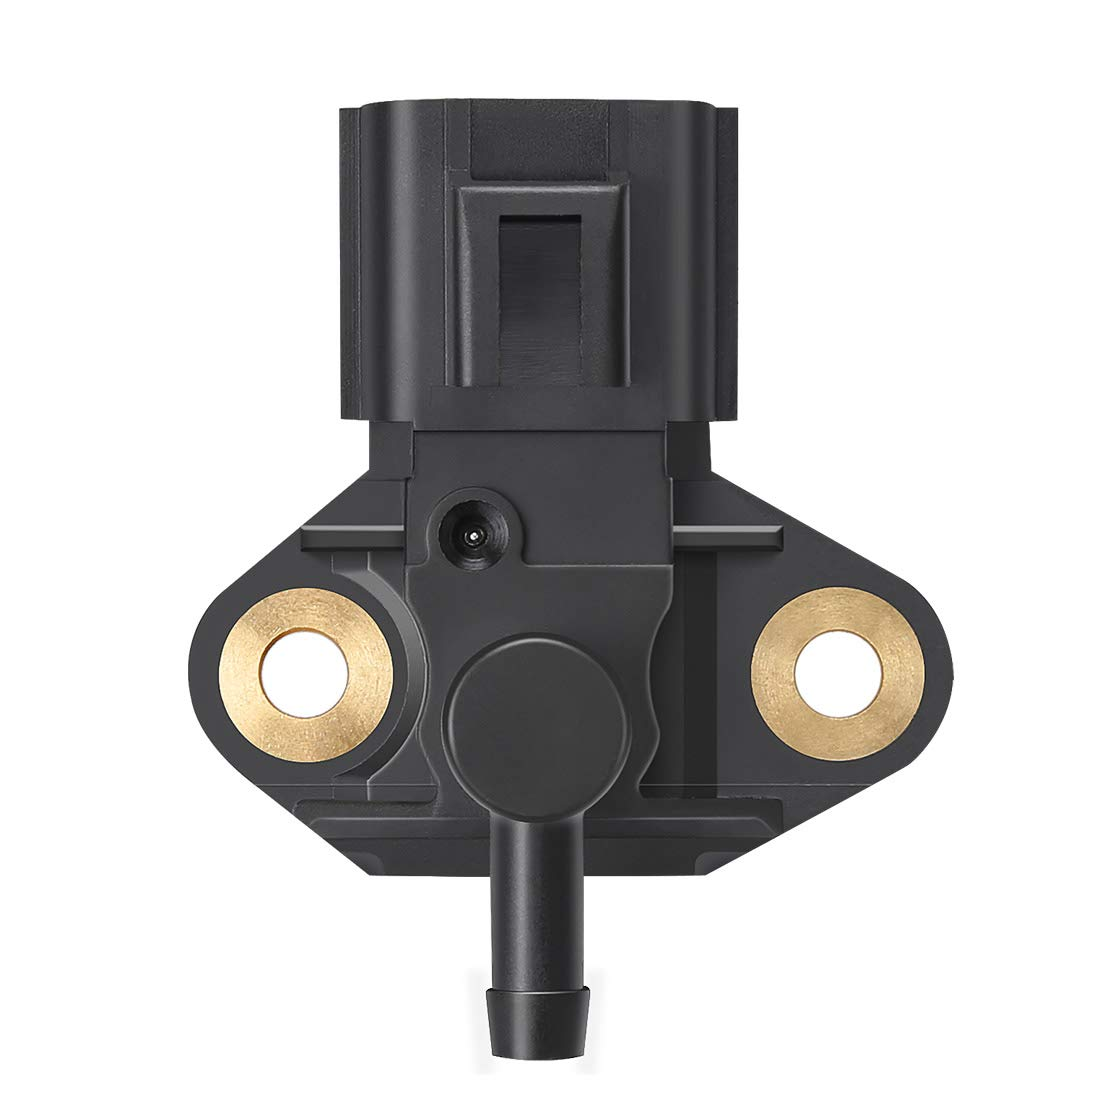 Focus 3F2Z-9G756-A Mustang Replaces# 3F2Z9G756AC Fuel Rail Injection Pressure Sensor for Ford F250 Escape Lincoln,E-series F150 Super Duty 3F2Z9F792CA 3F2E-9G756-AD Mercury /& More Explorer